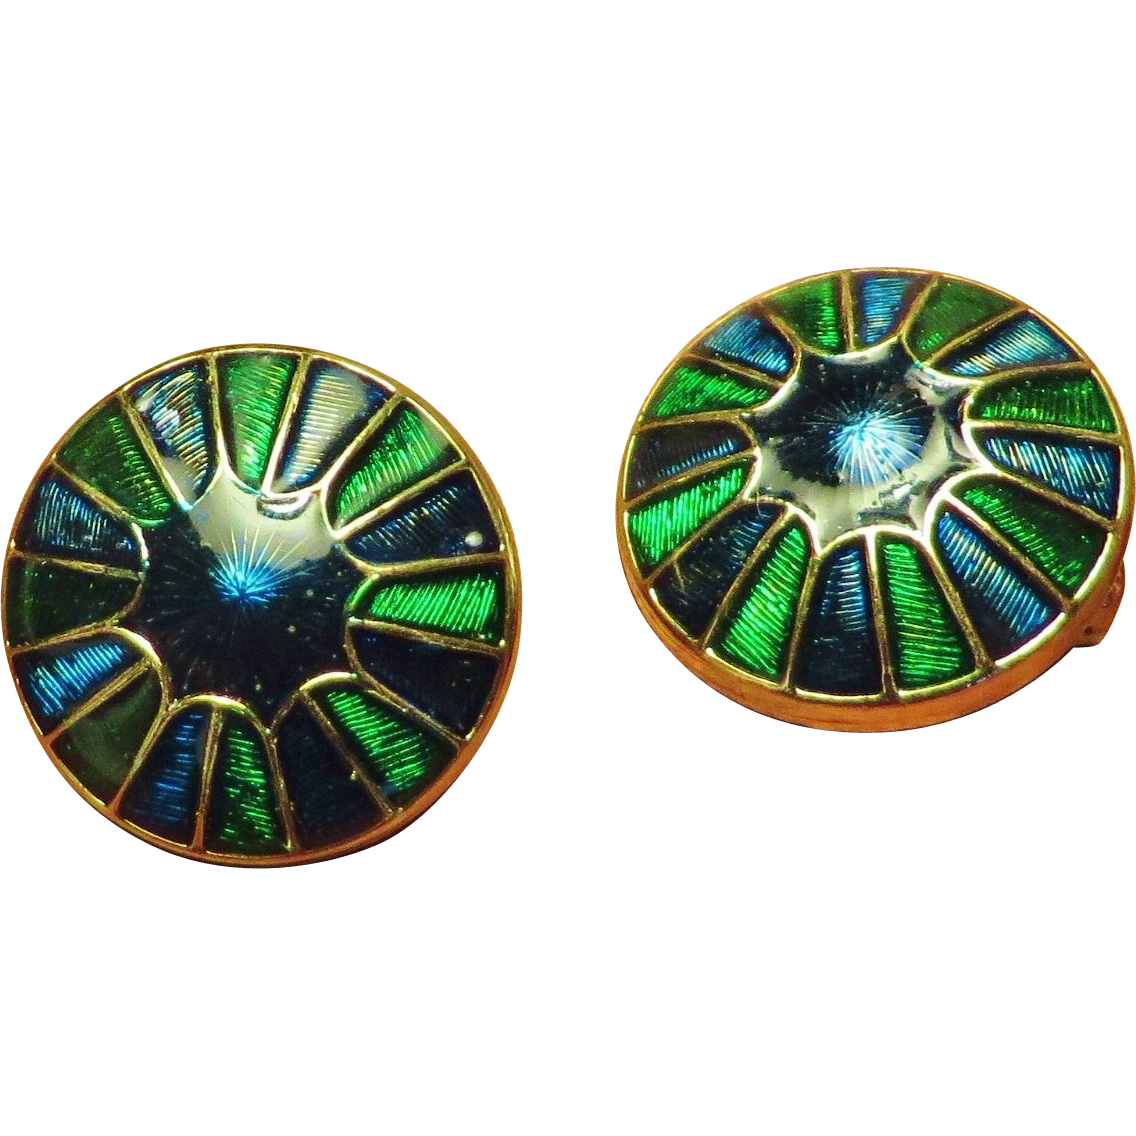 Henkel Grosse Peacock Colors Enamel Earrings - 1967